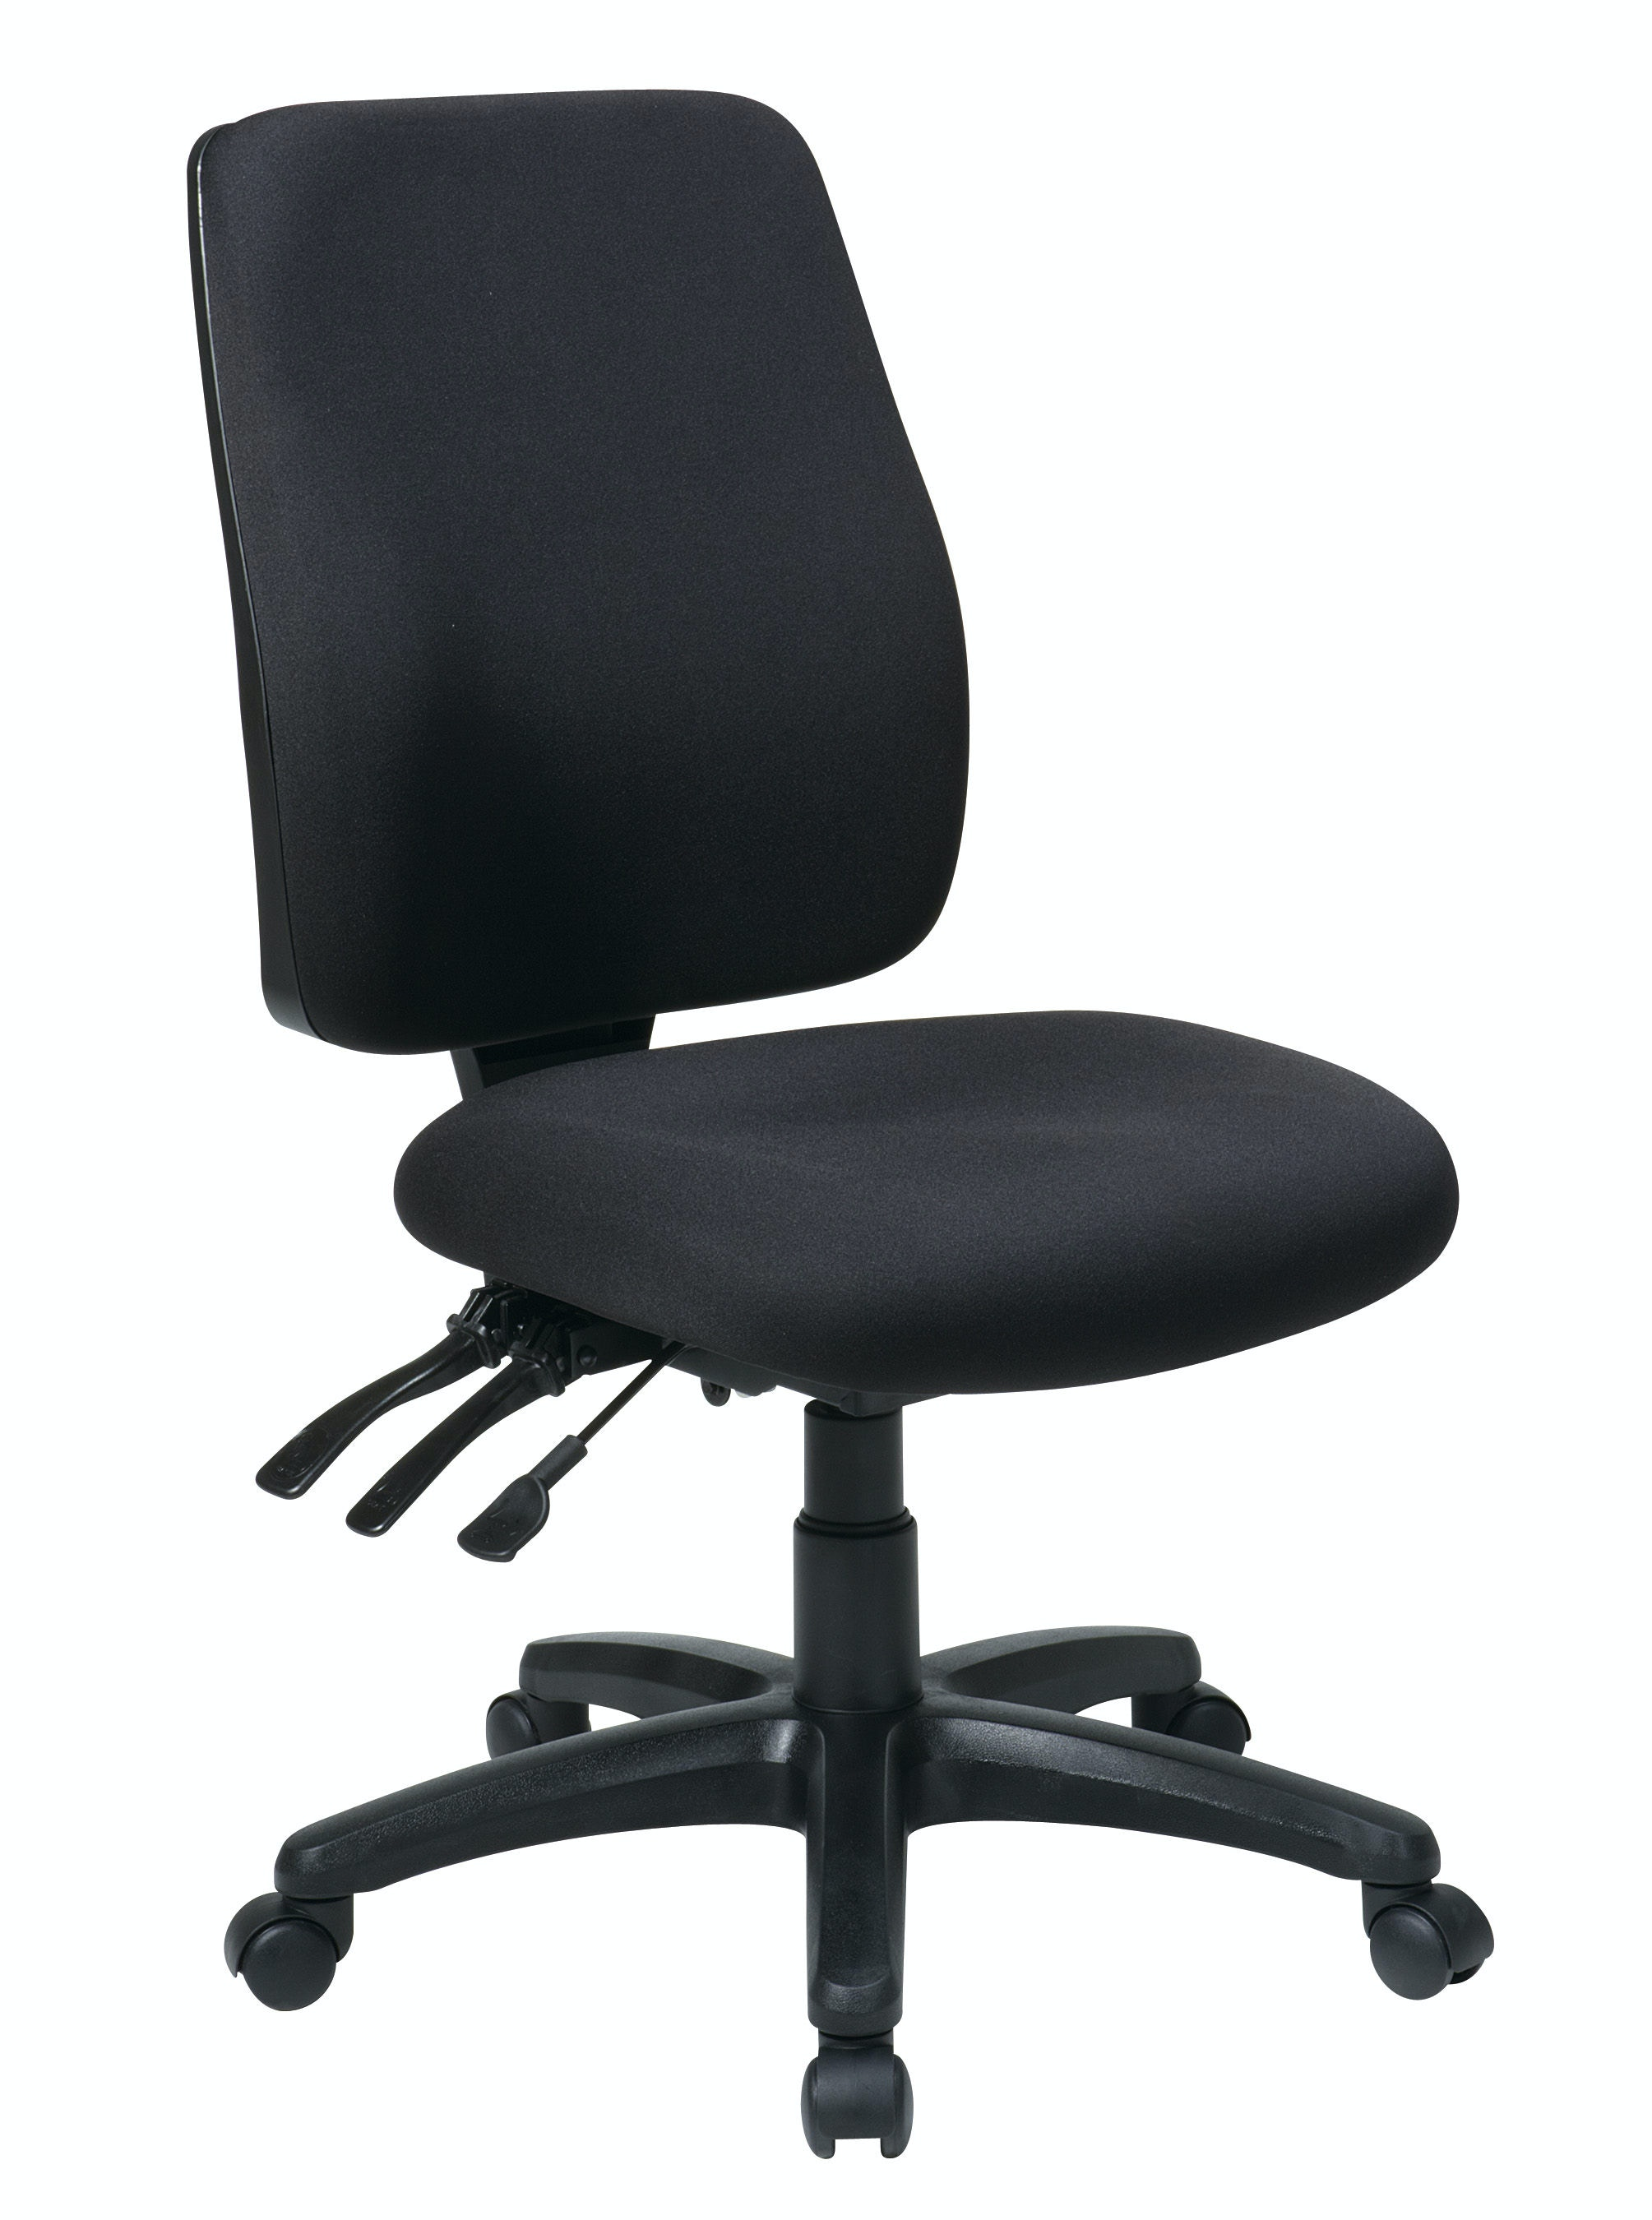 ergonomic chair without arms lazy boy gaming uk office star products home high back dual function 33340 30